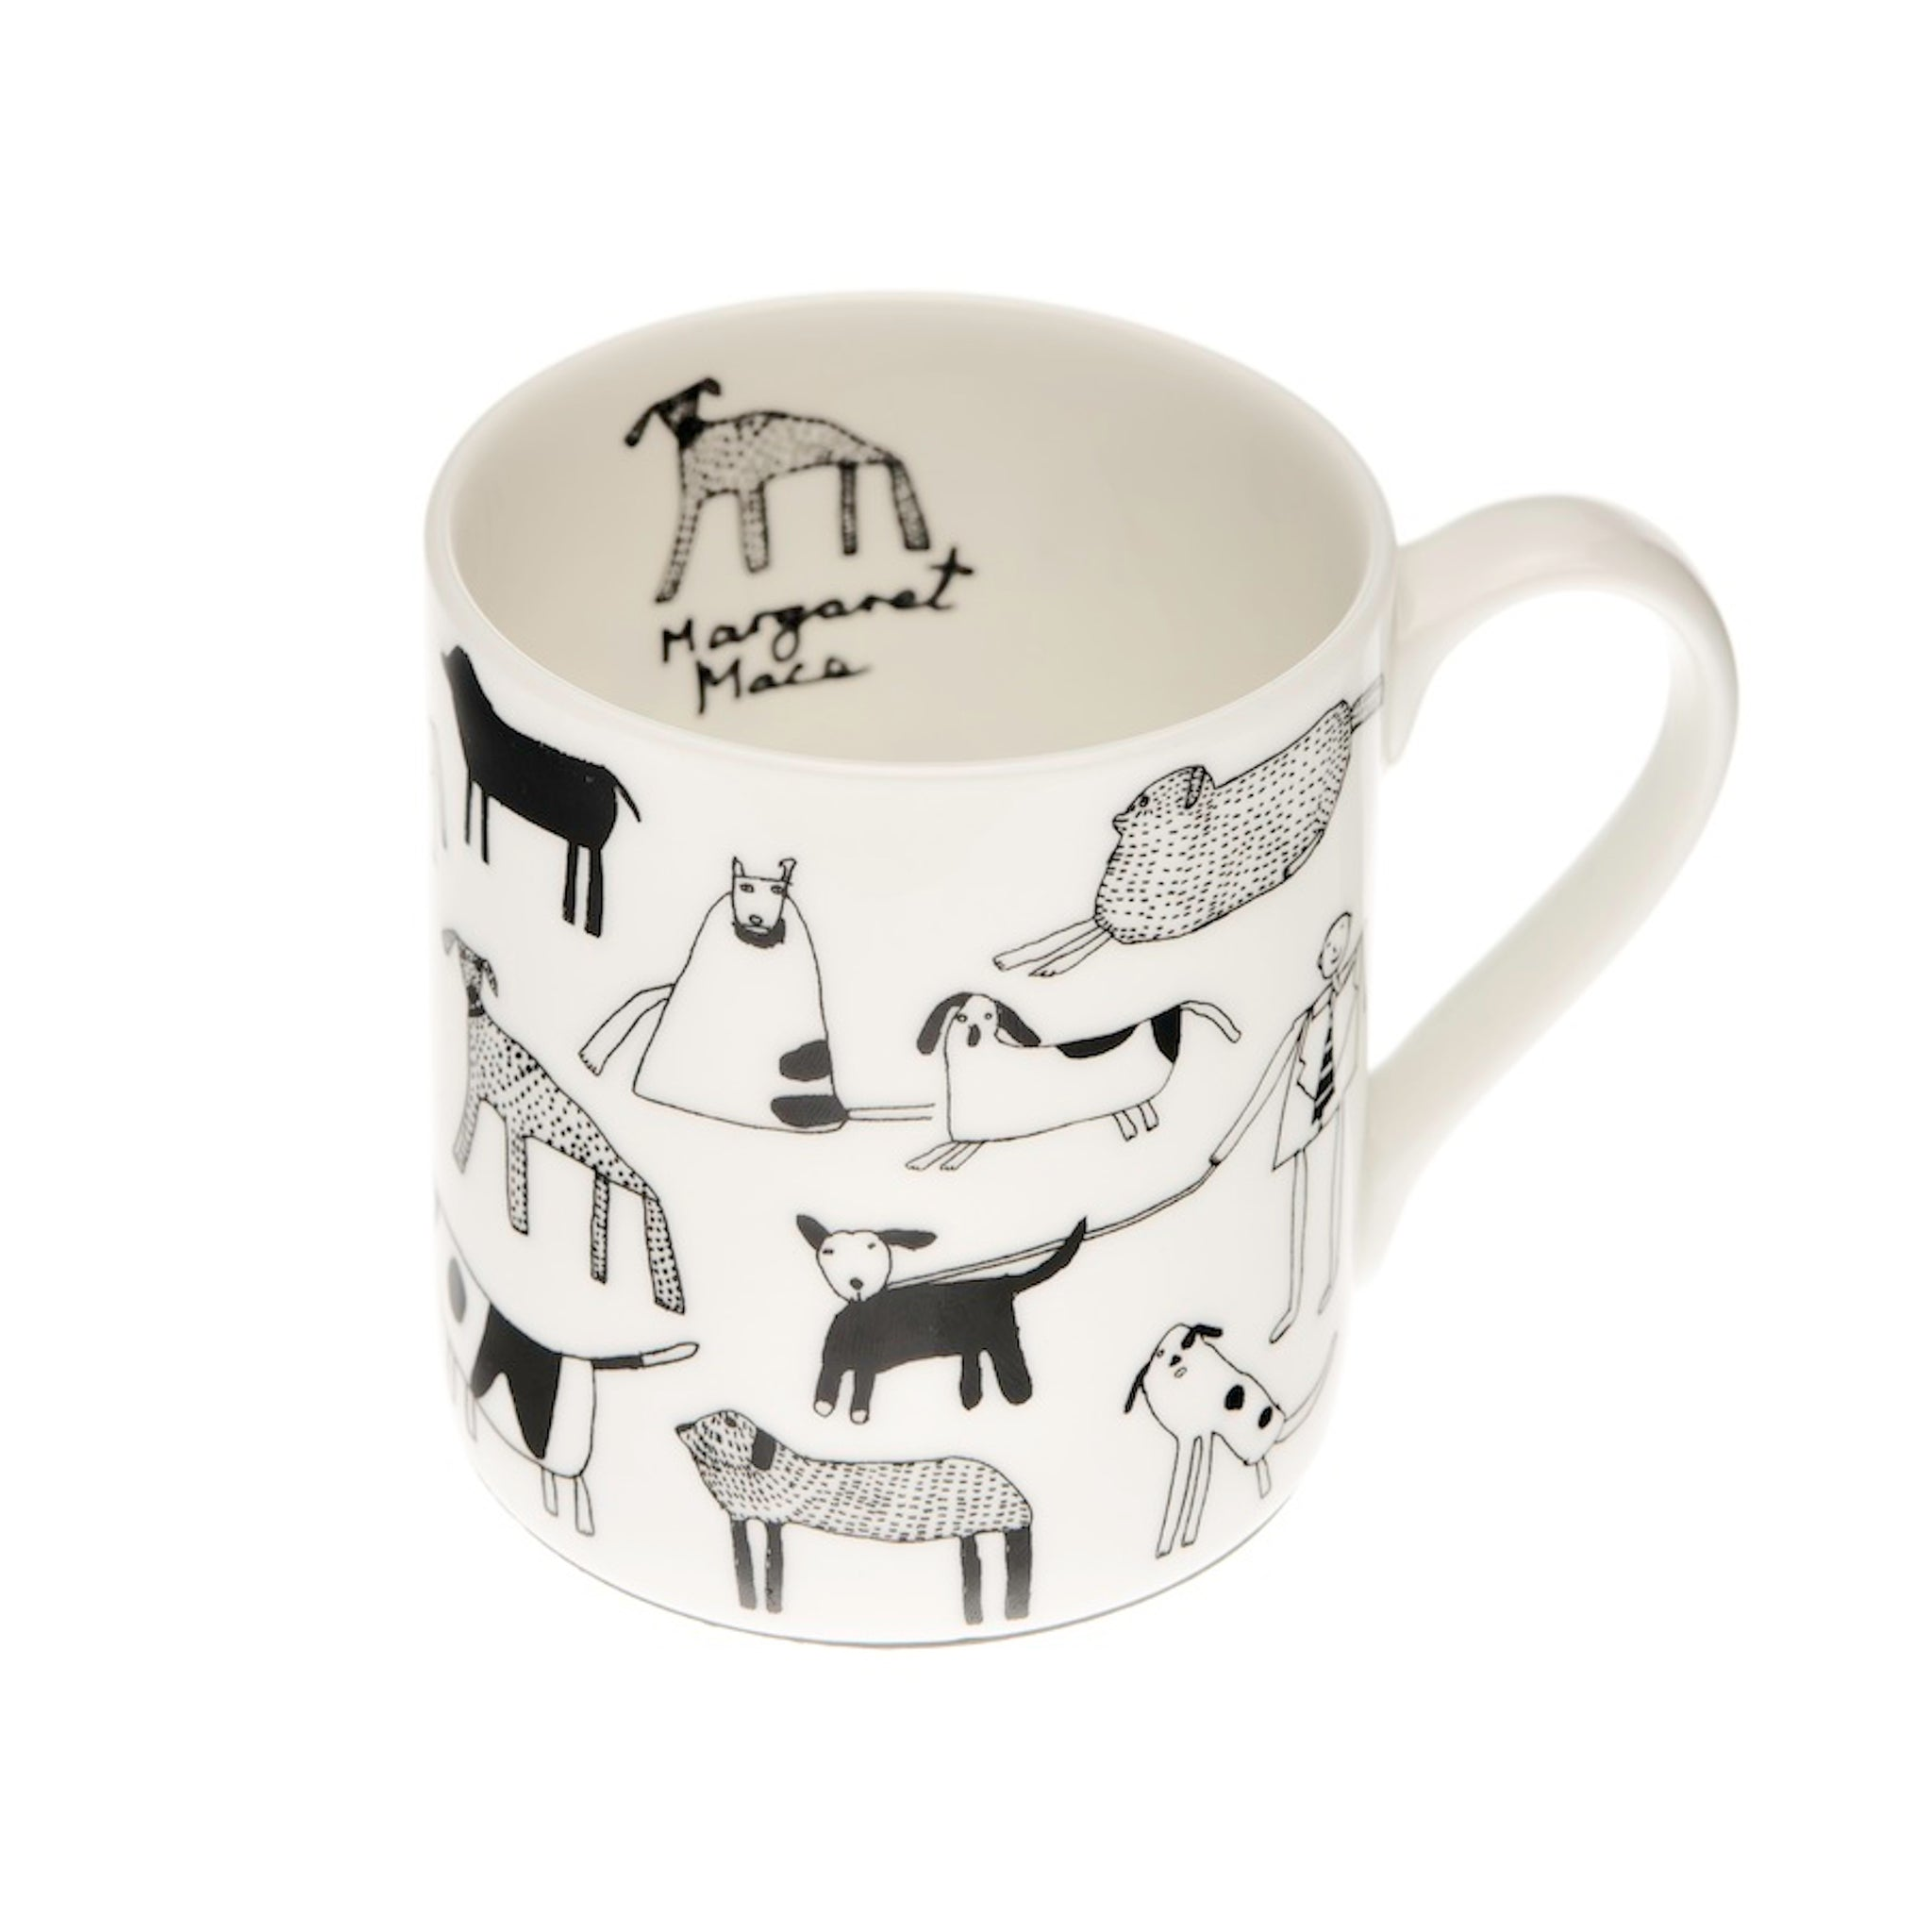 'Dogs' Fine Bone China Mug